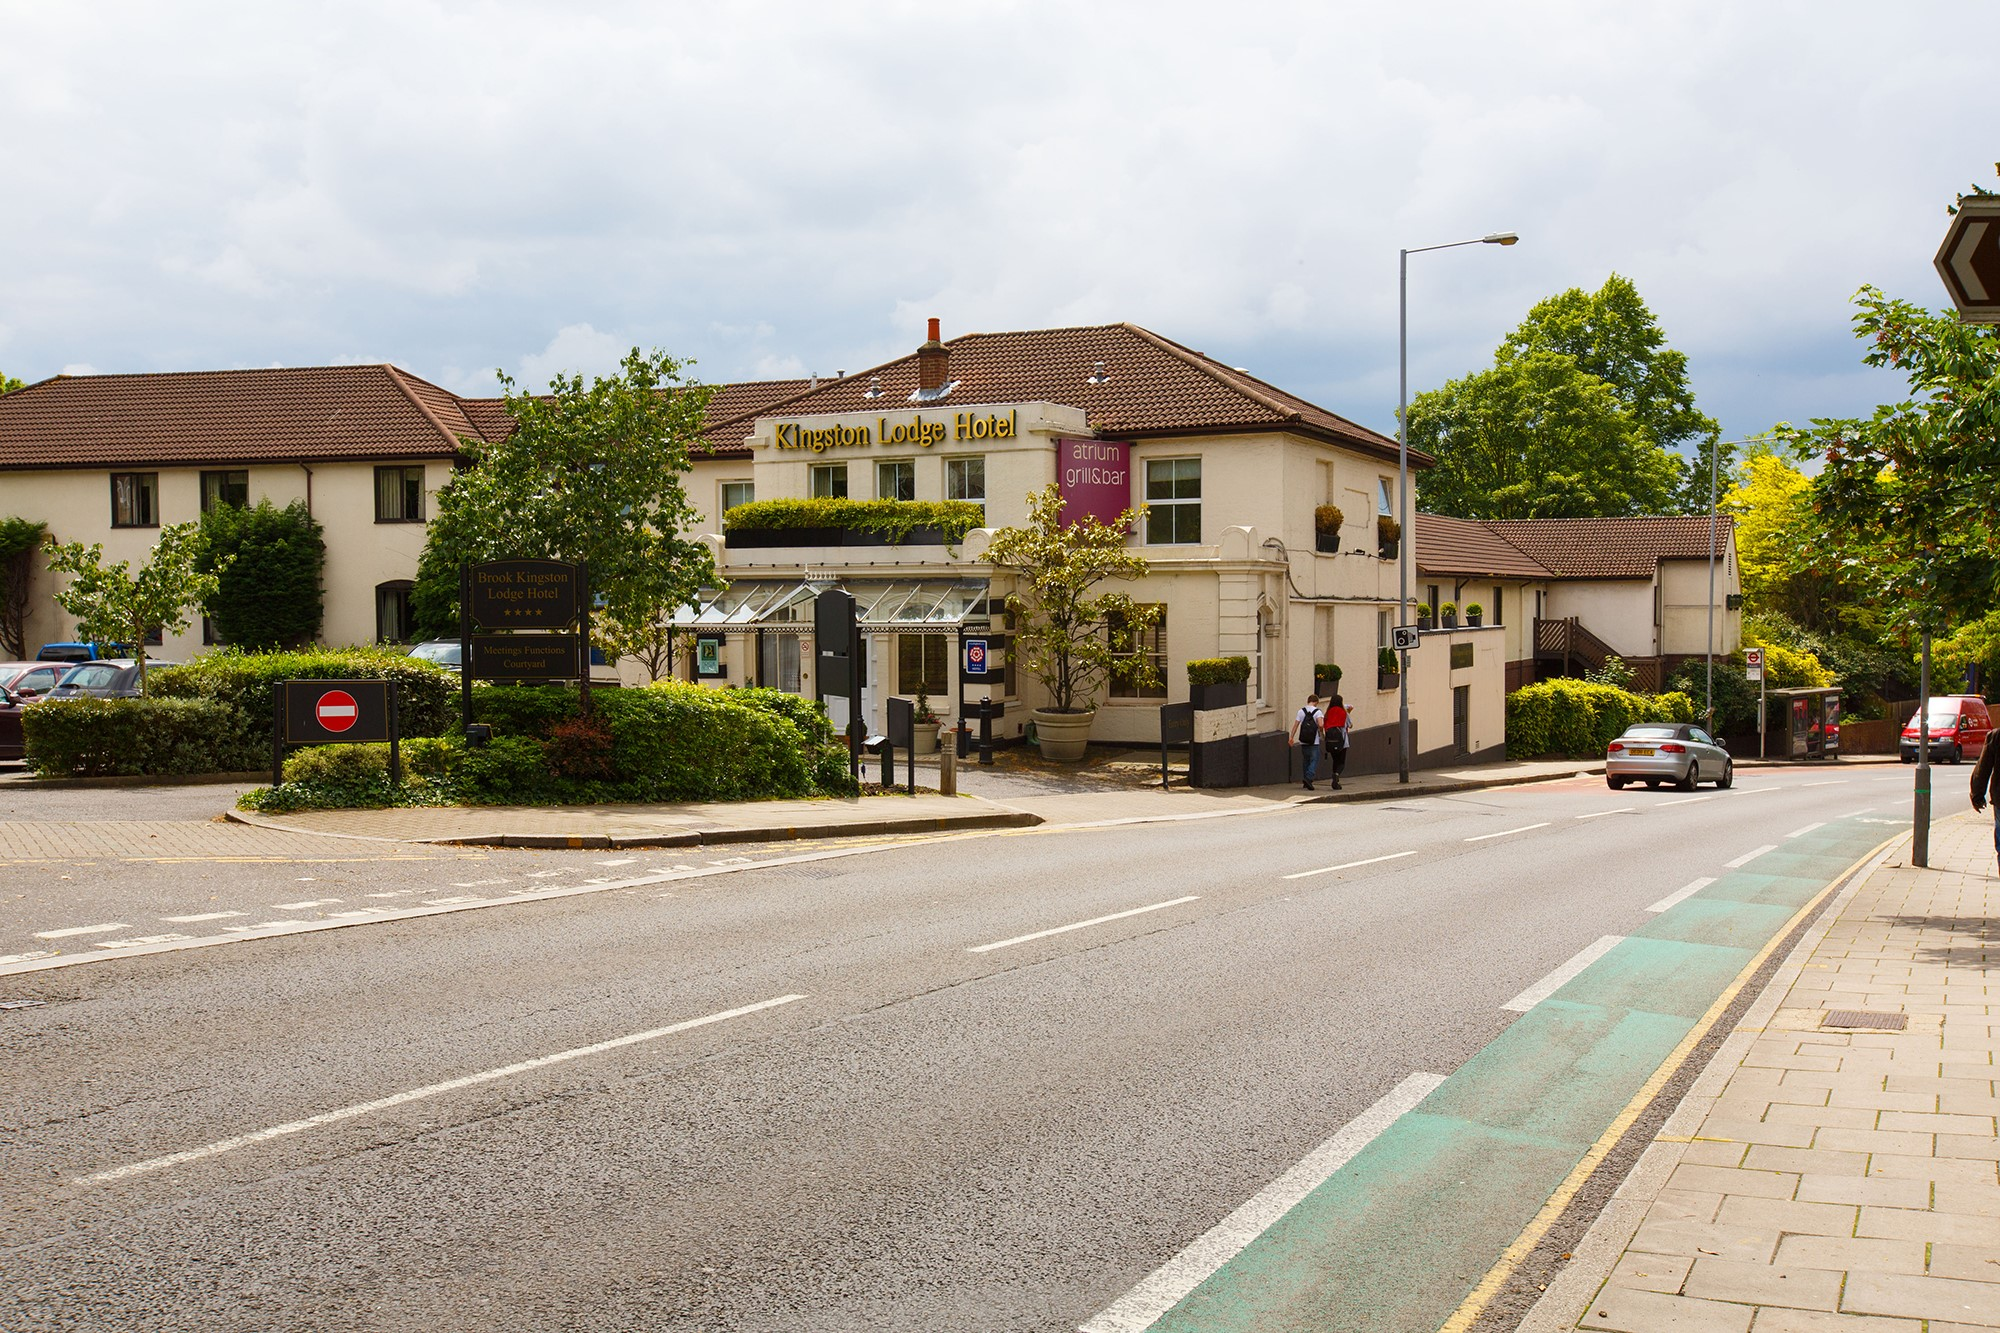 Hounslow Hotels Cheap Hotel Bookings Infotel Co Uk